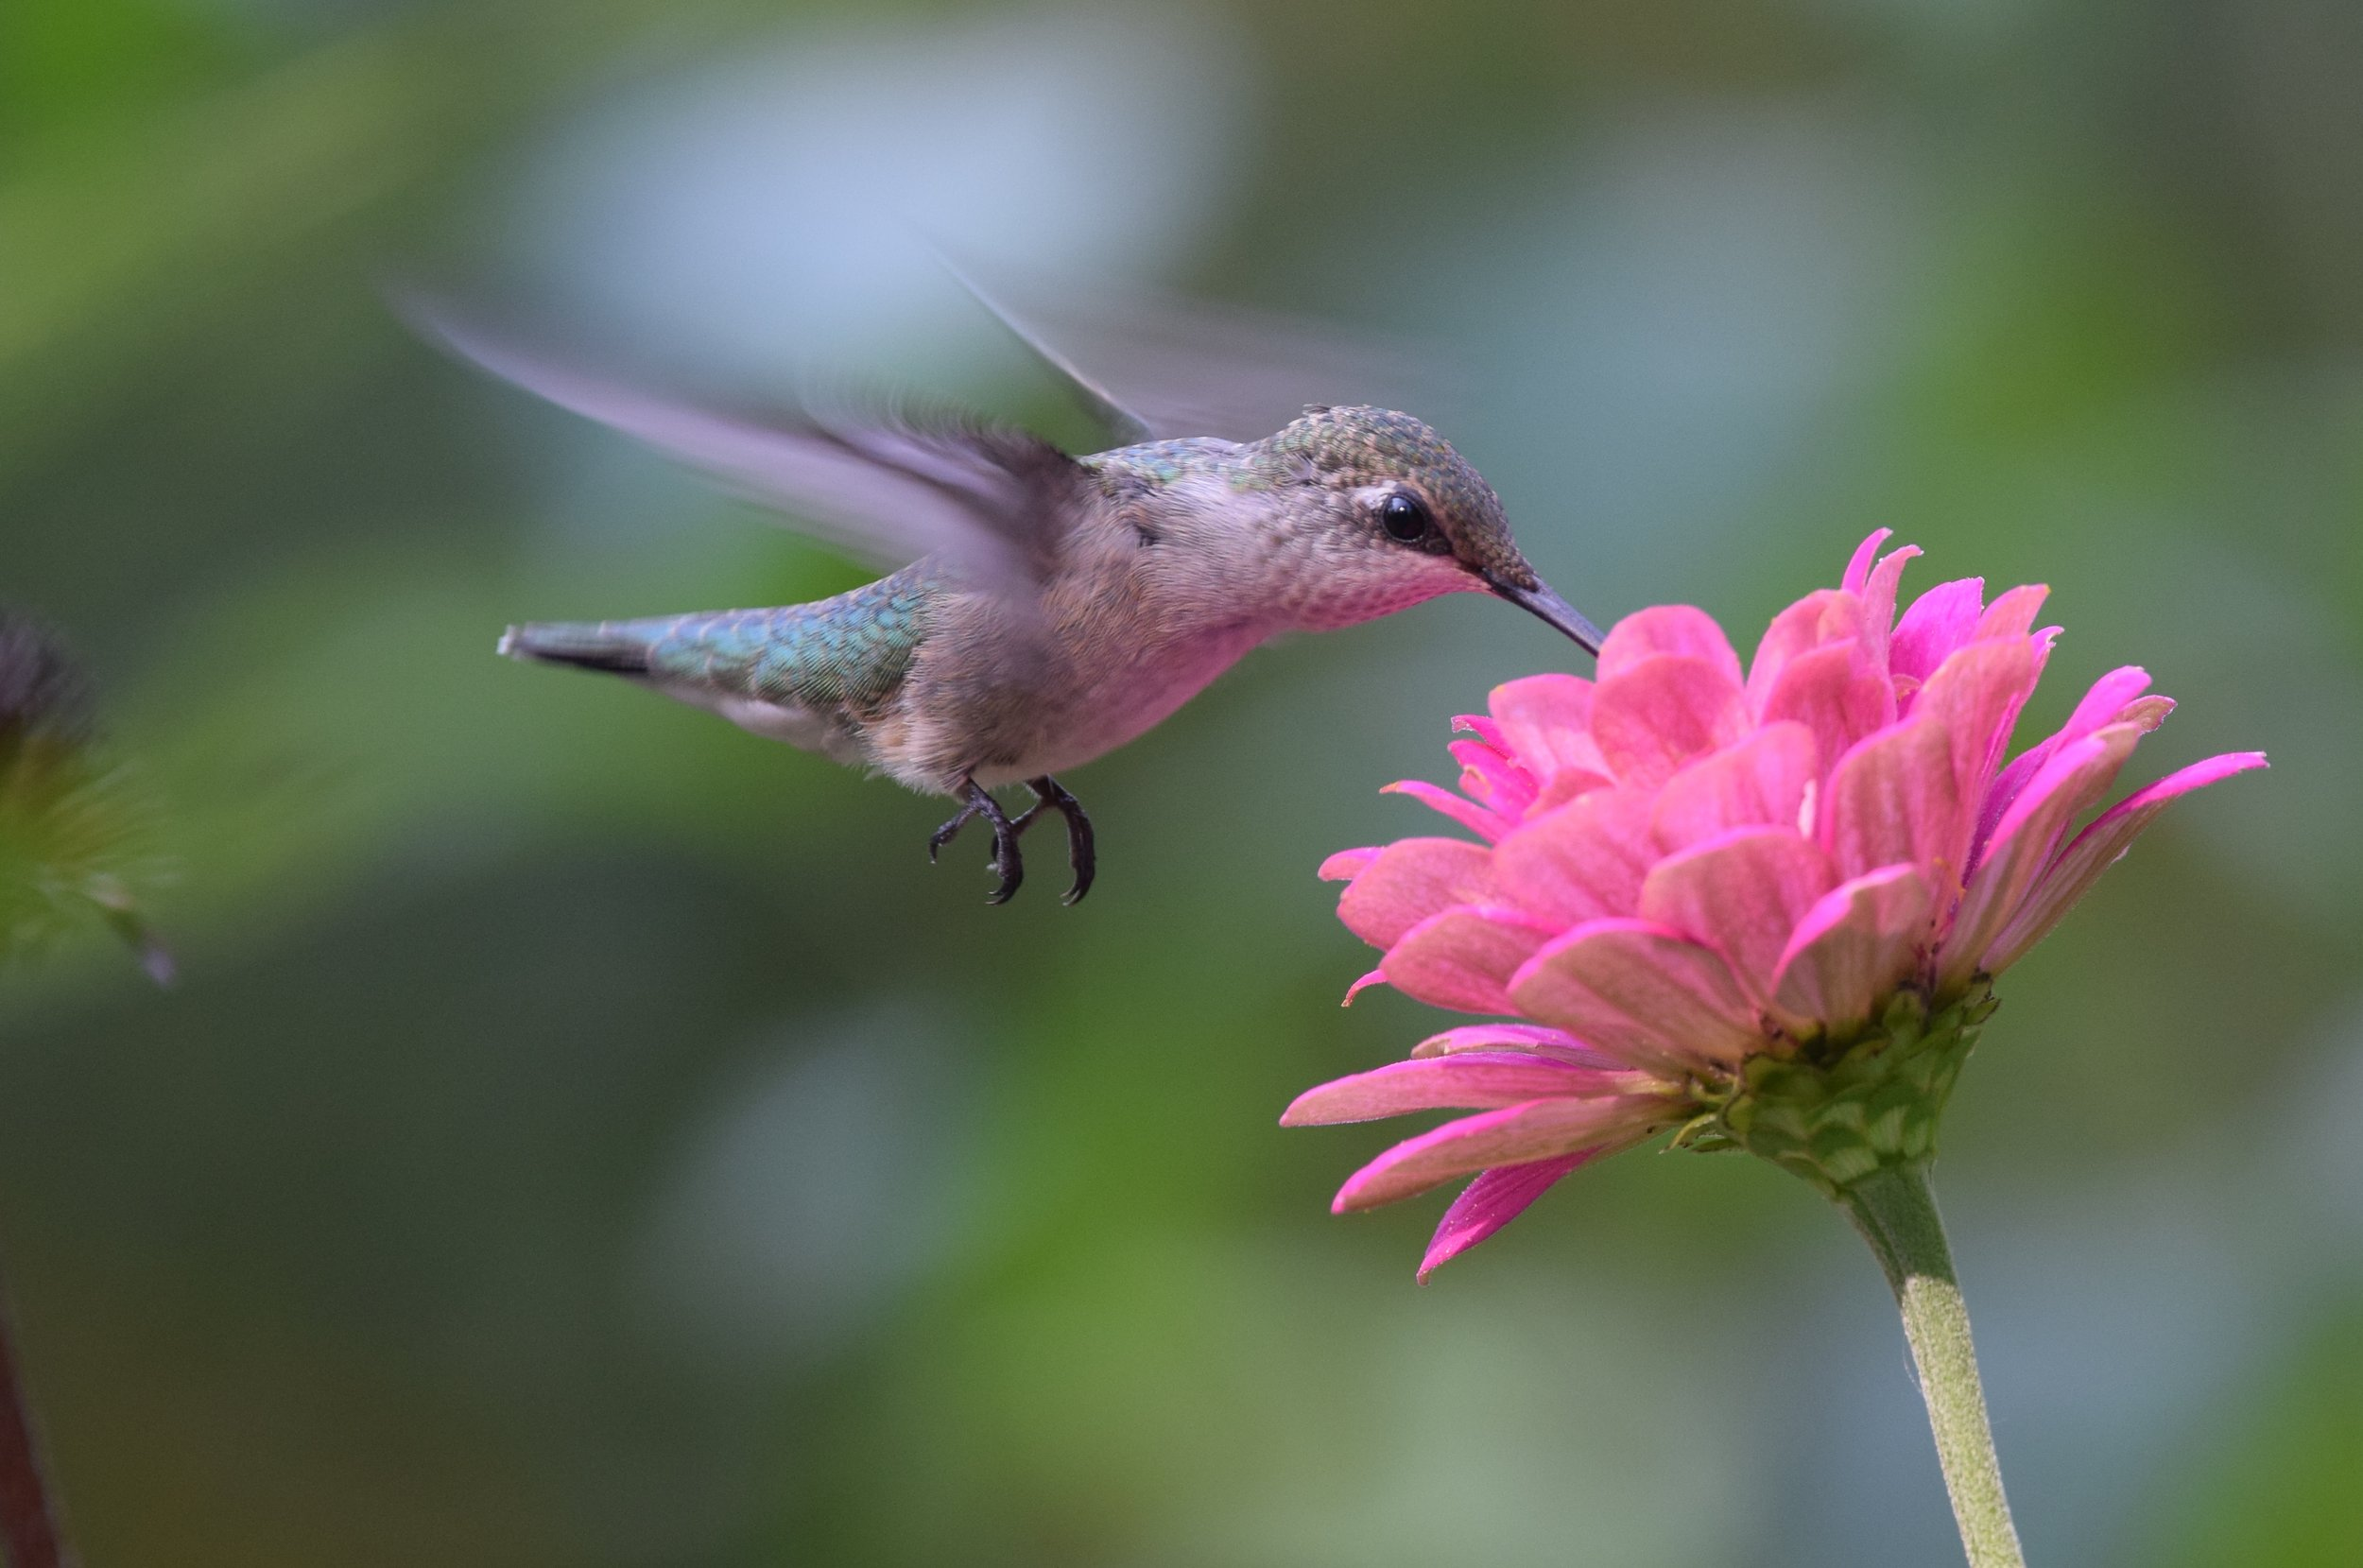 Attracting Hummingbirds - These fast, iridescent little guys and gals are fun to watch, leaving you wanting more in your yard. There are a lot of changes you can make to your own garden to make it an attractive paradise for hoards of hummingbirds.